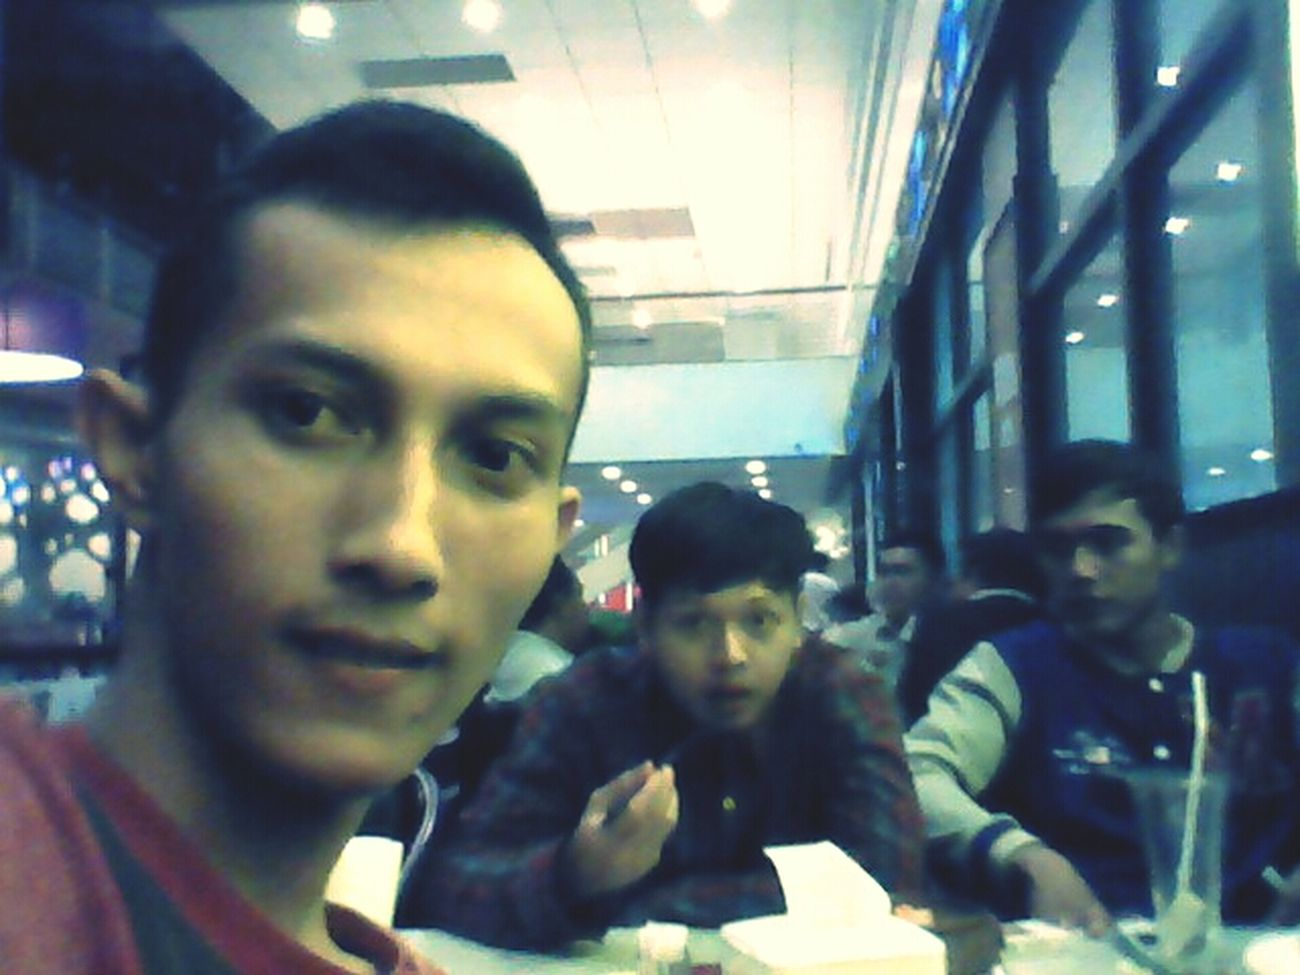 diner, this afternoon, tang city mall, tea garden restaurant.